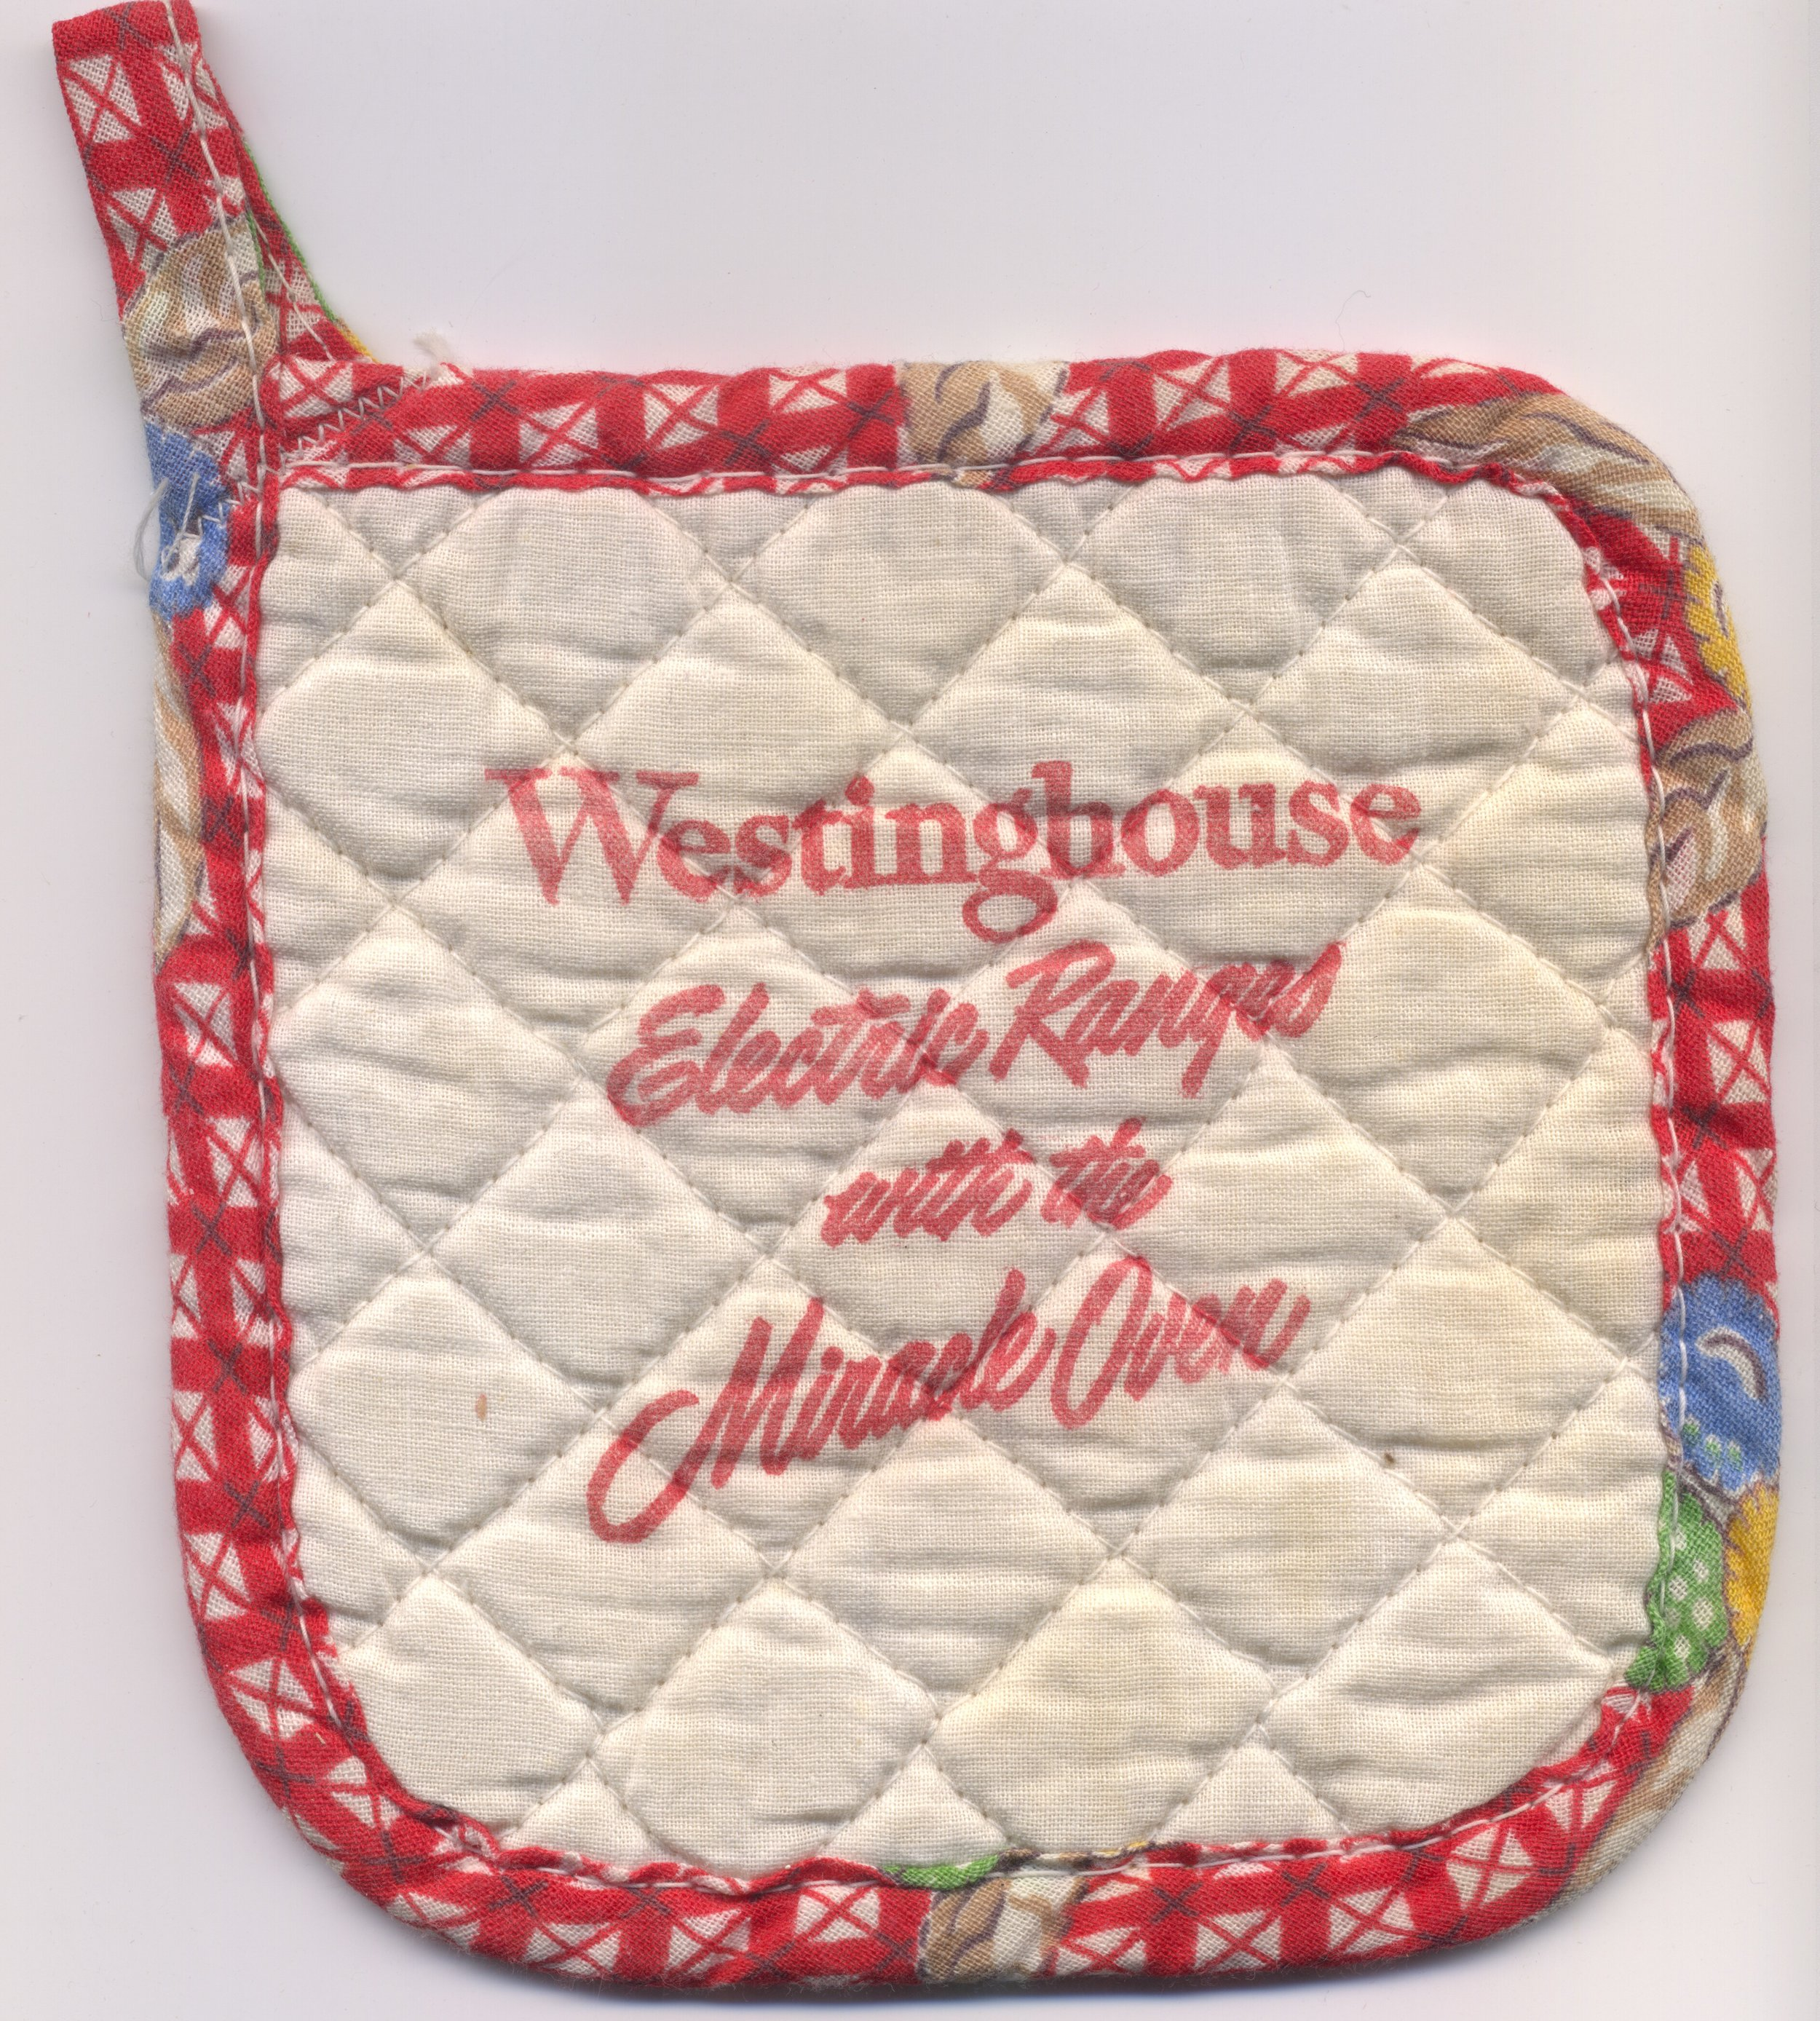 A fun collectible pot holder that no doubt came with a new Westinghouse electric range